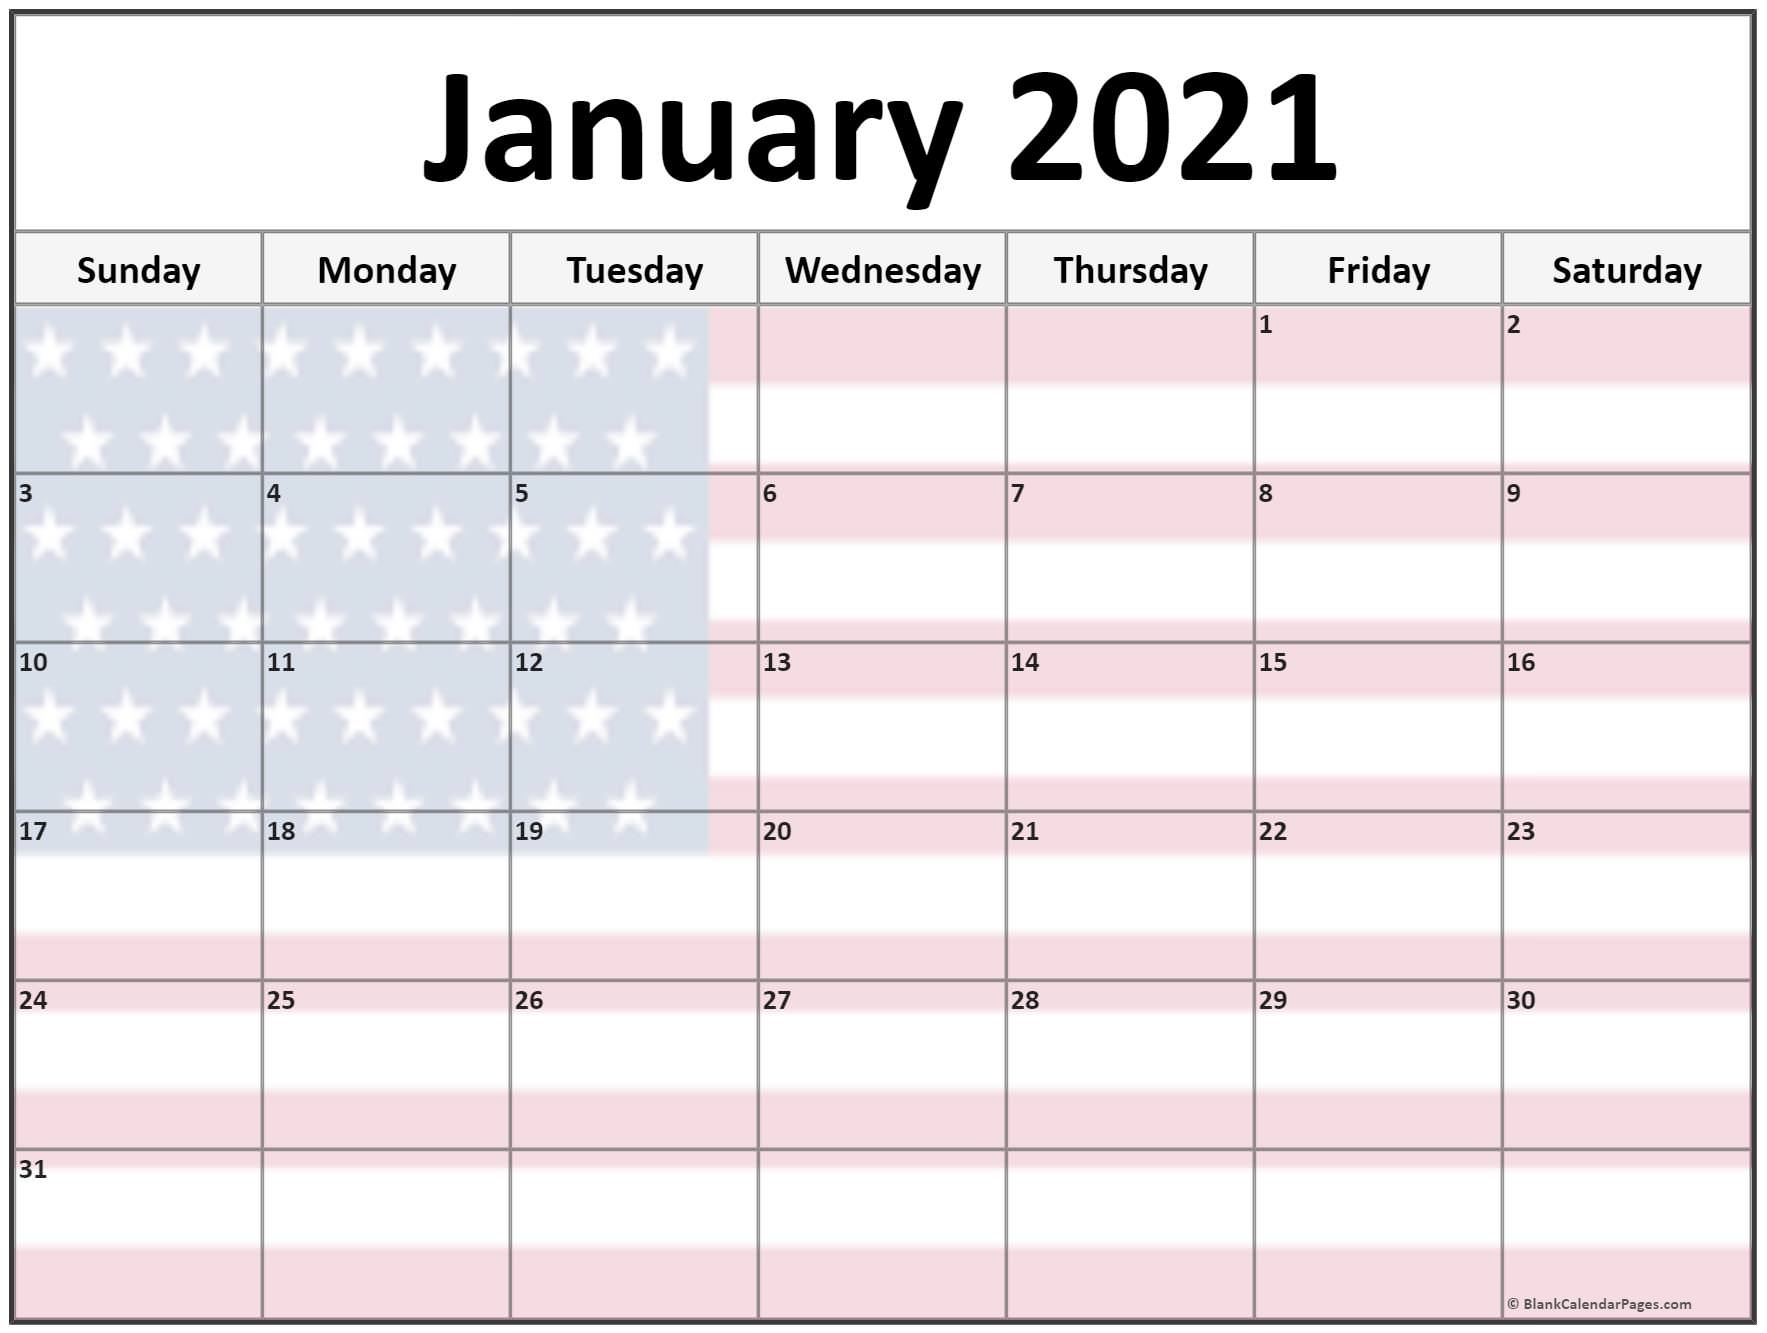 Collection Of January 2021 Photo Calendars With Image Filters 2